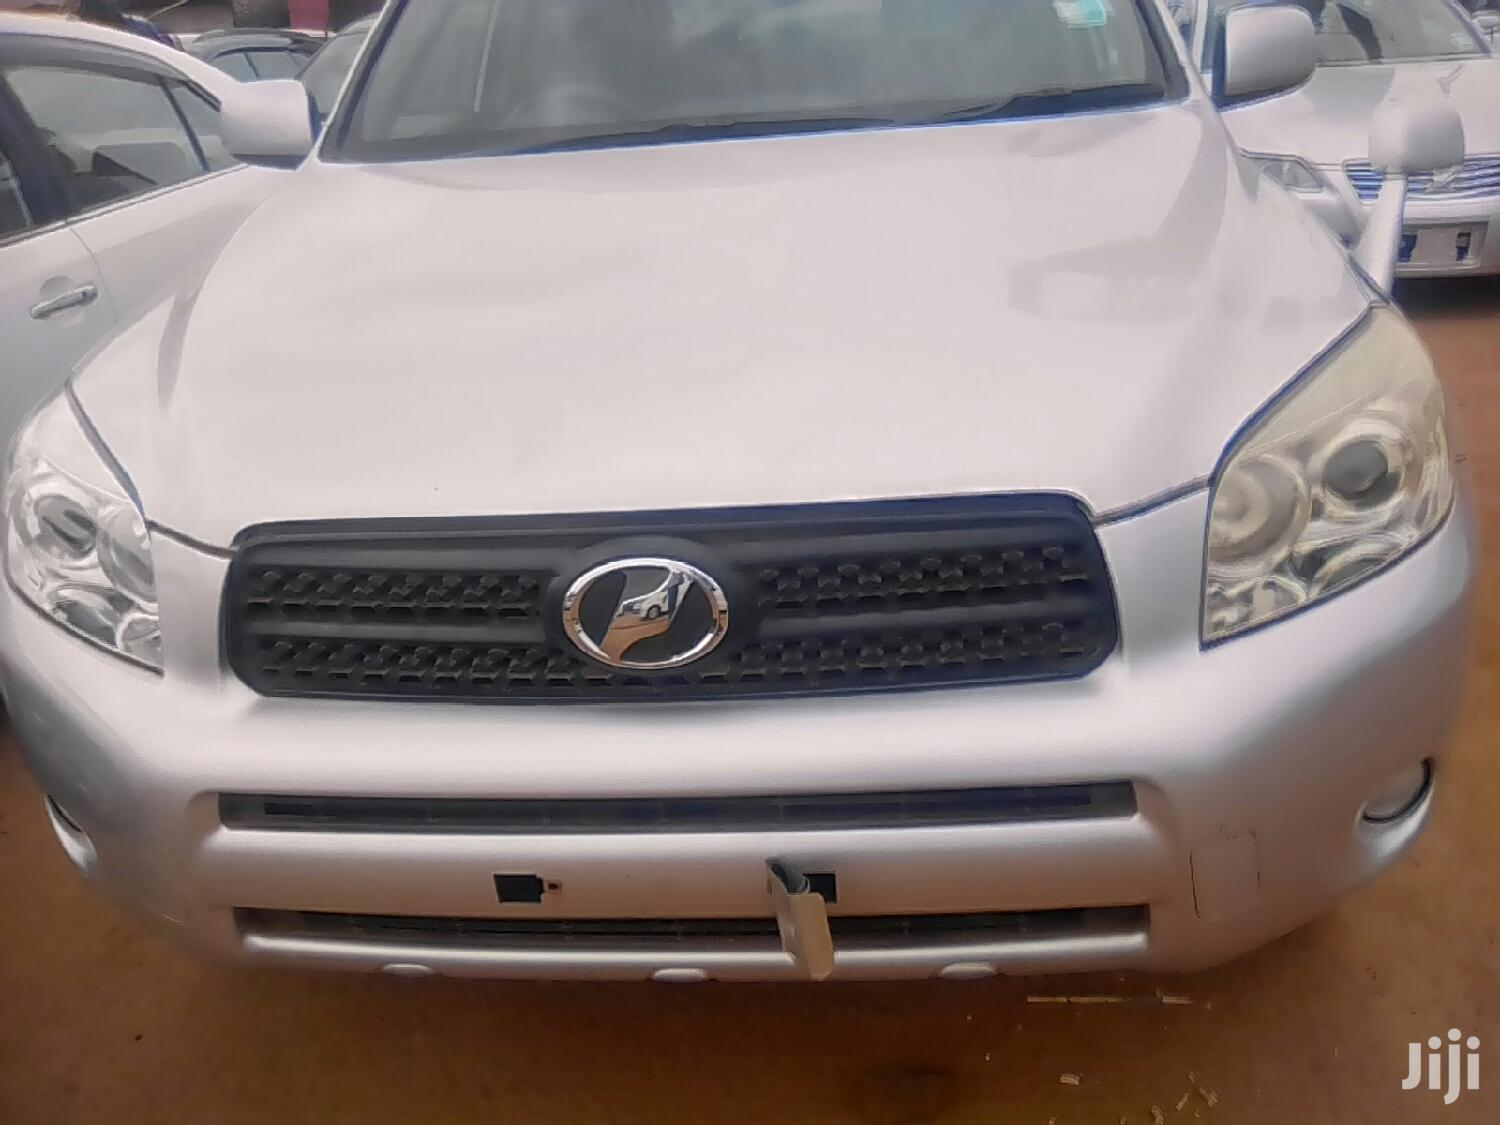 Toyota RAV4 2007 Silver | Cars for sale in Kampala, Central Region, Uganda